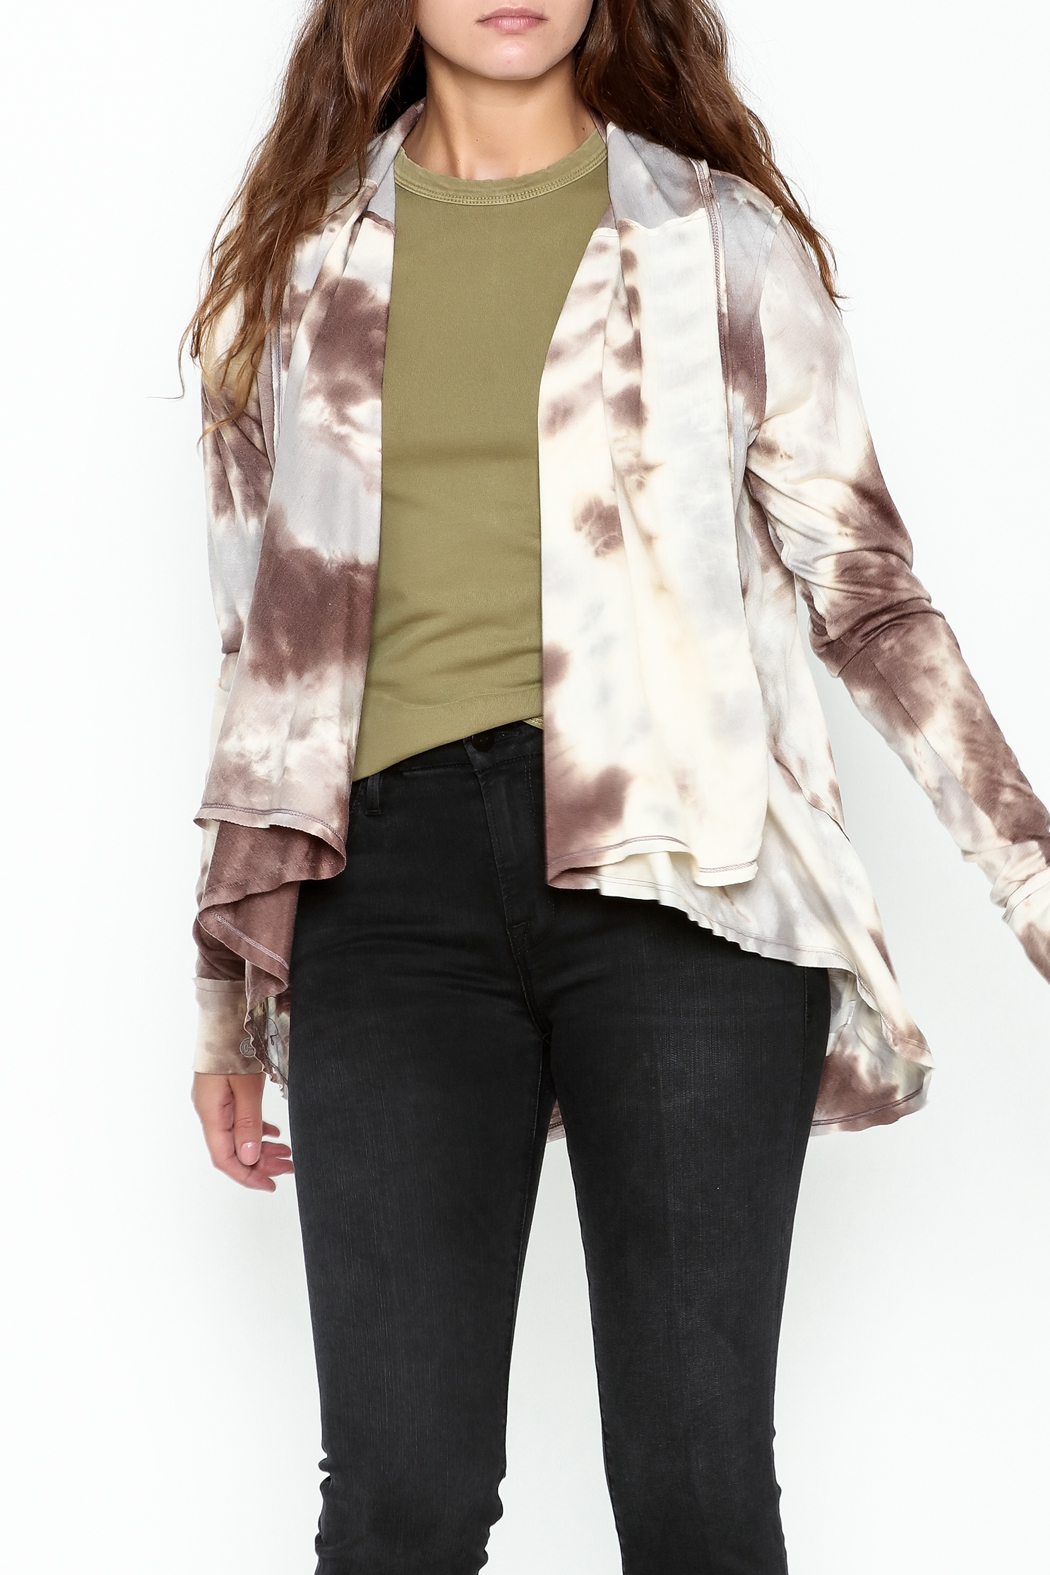 Coco + Carmen Tie Dye Cardigan - Front Cropped Image